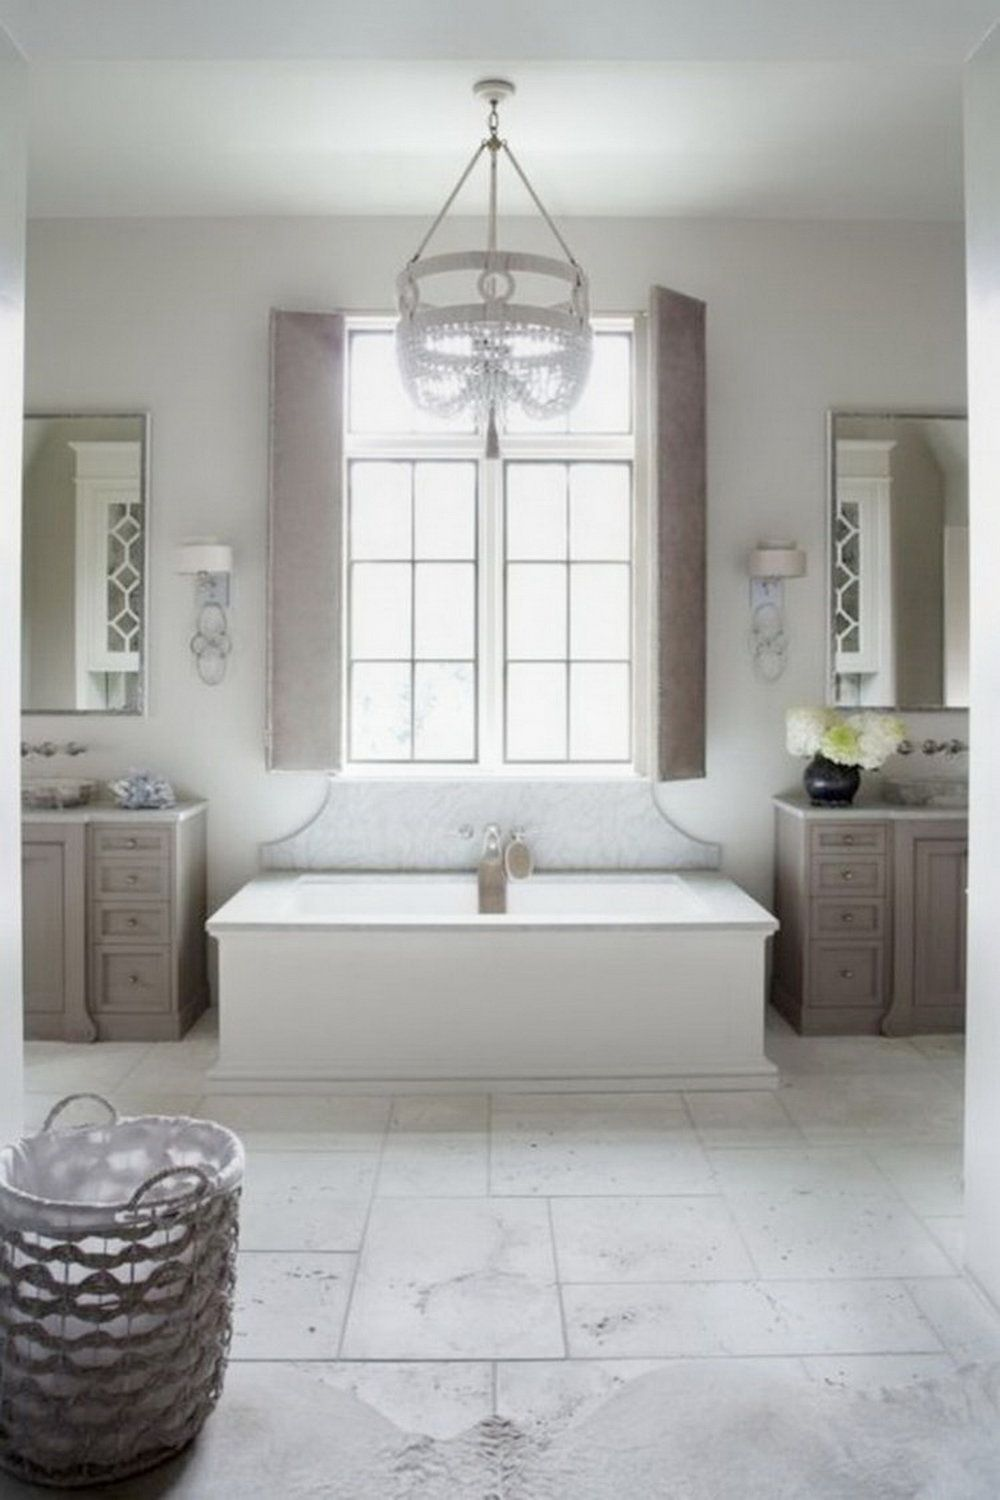 26 Trending Luxury Master-Bathroom Designs 🛀 | Bathrrooms ...